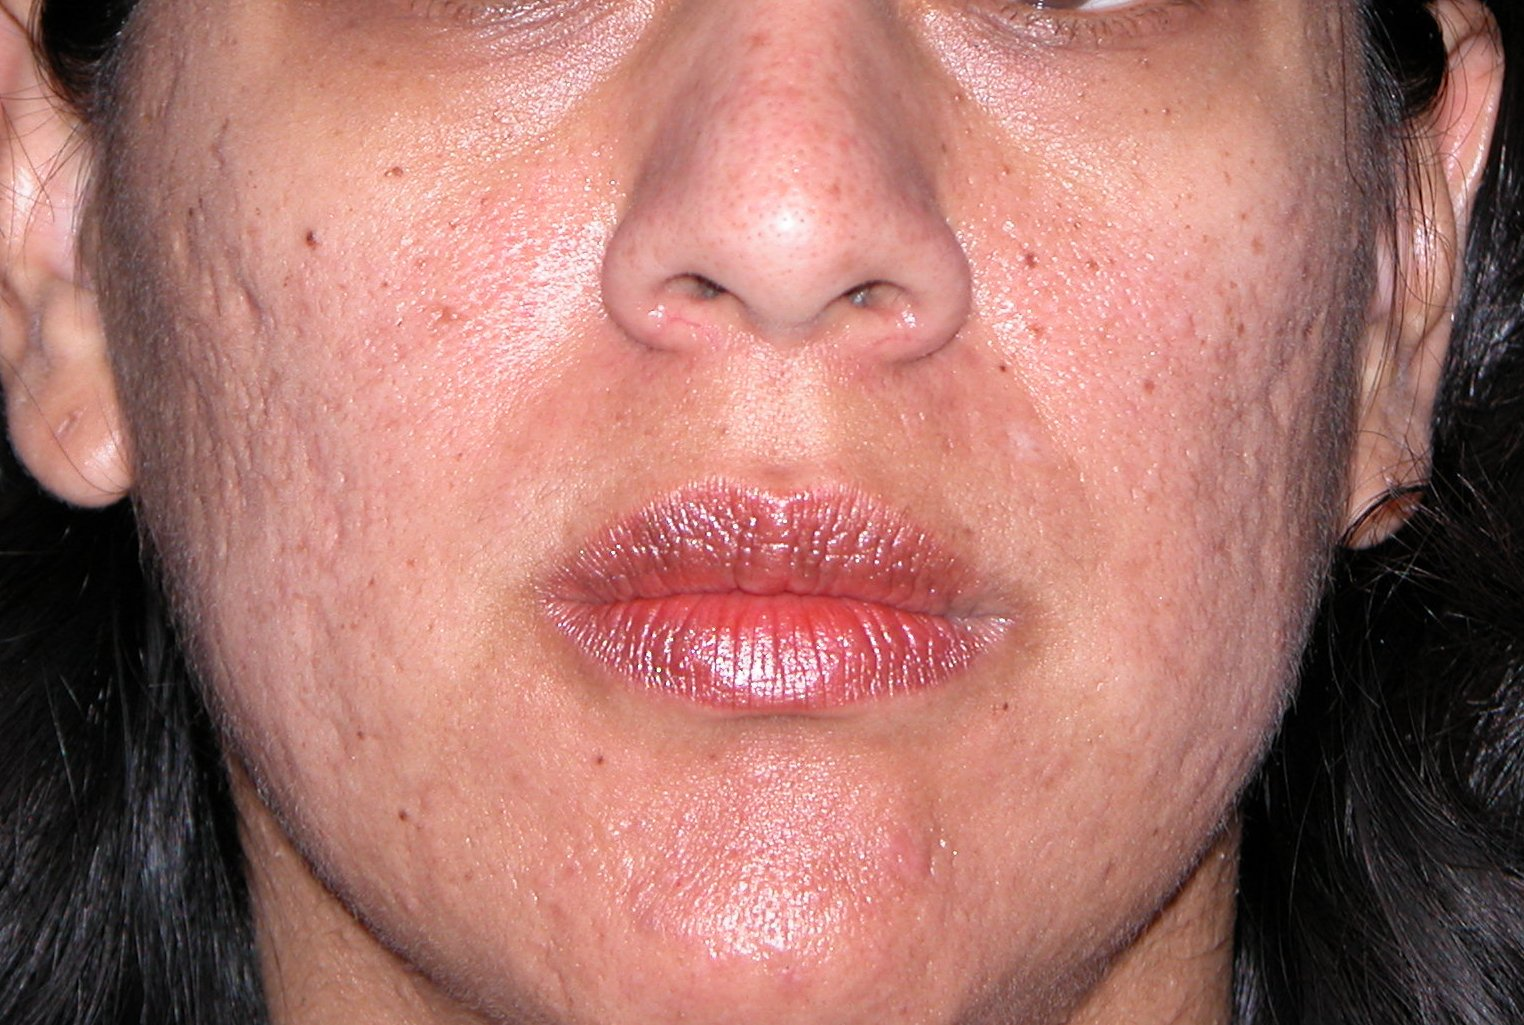 Acne Scars - Eliminate Acne Scars By Following These Easy ...